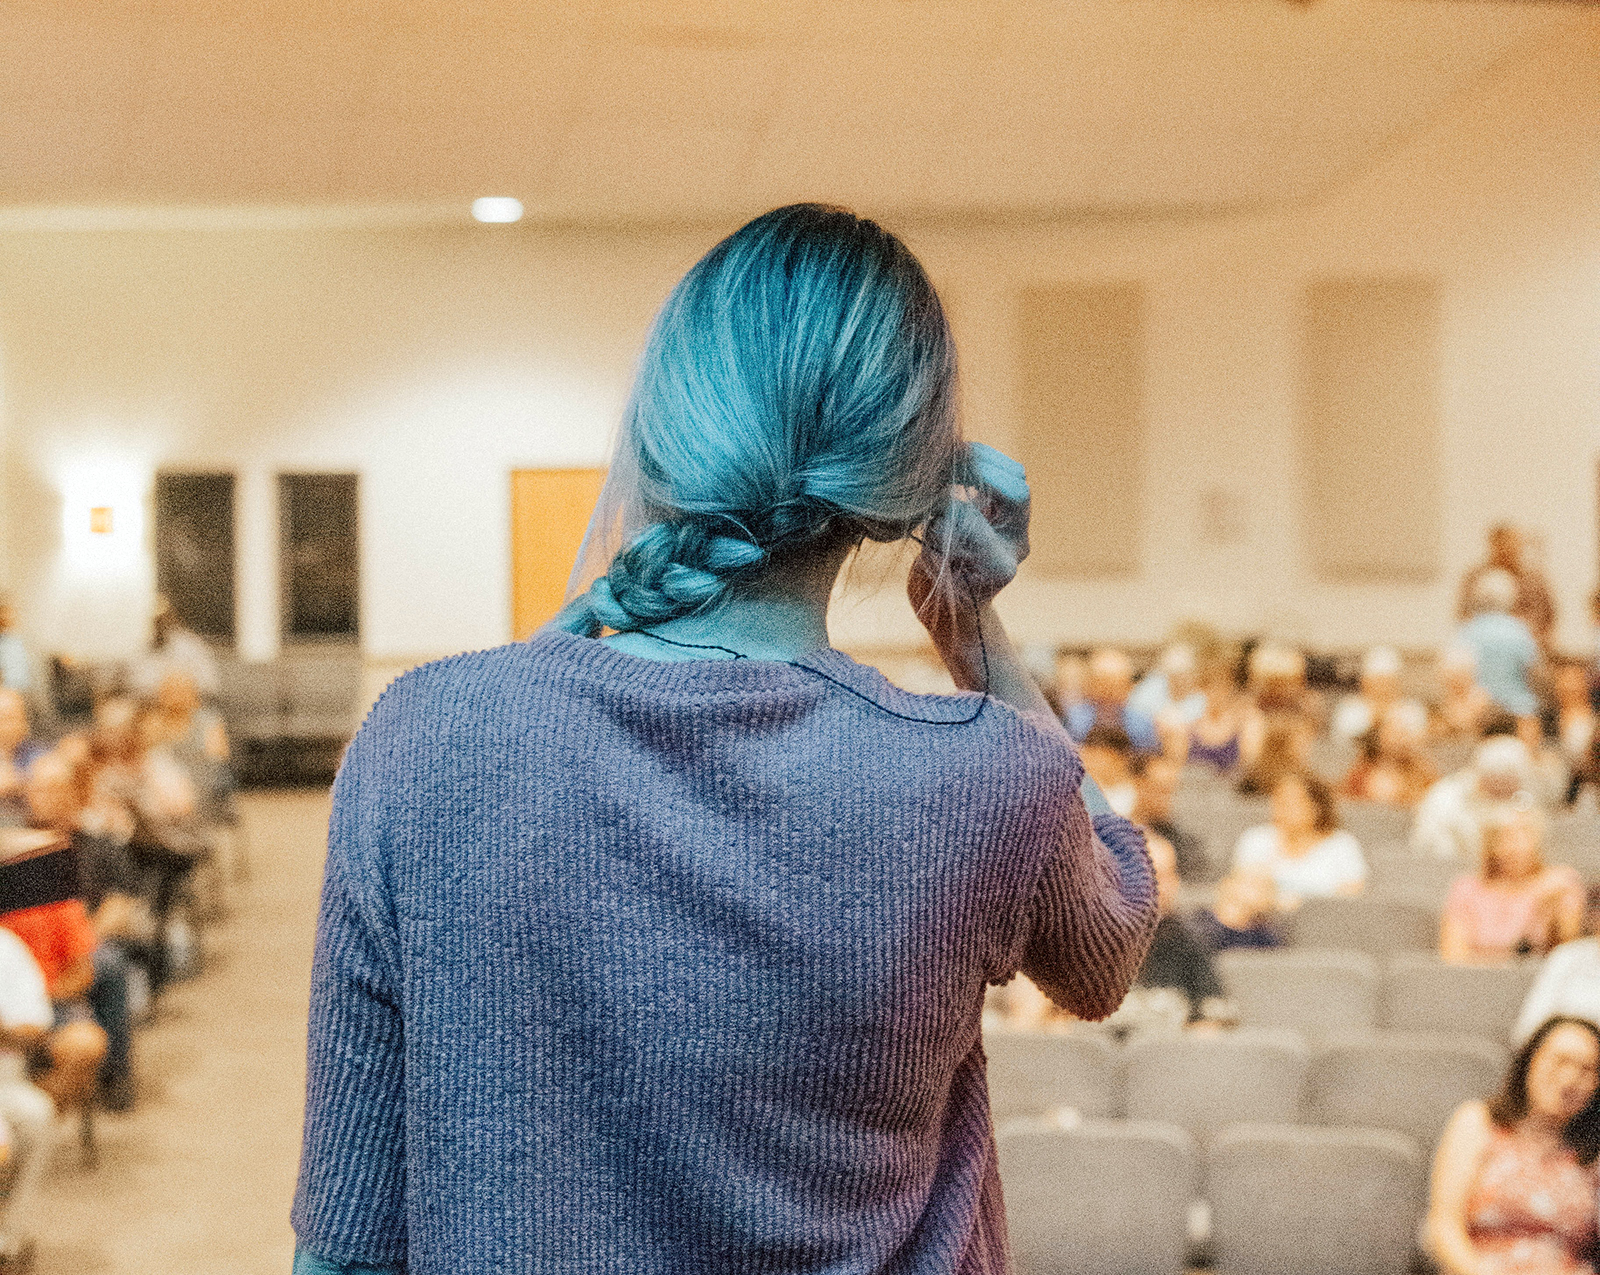 speaking at an event can get your business noticed